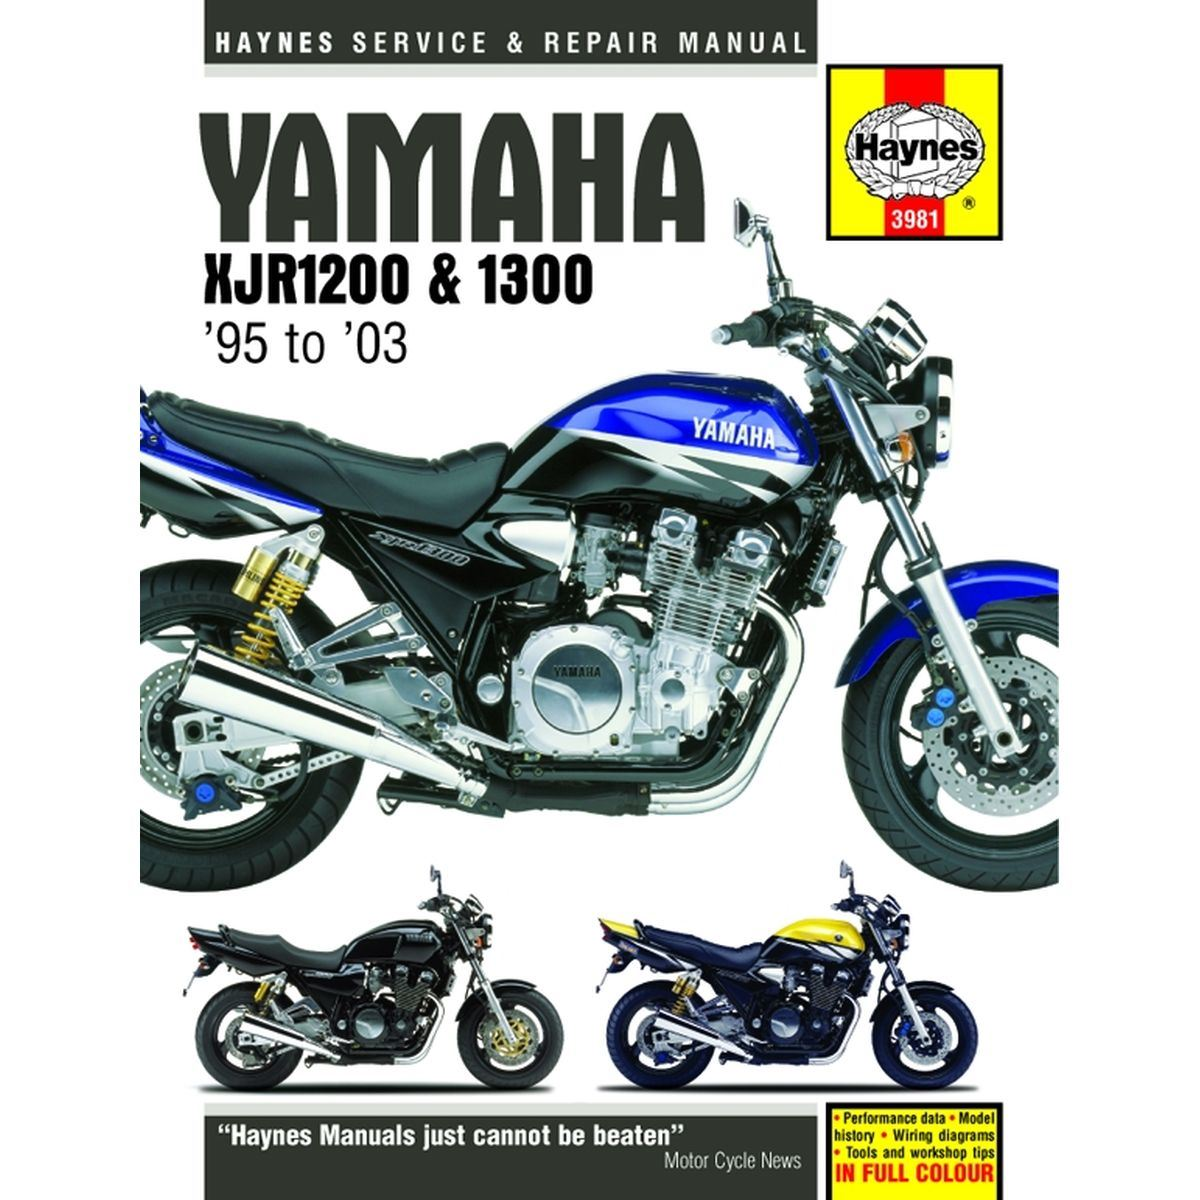 aw motorcycle parts haynes manual 3981 yam xjr1200 1300 95 03 picture of haynes manual 3981 yam xjr1200 1300